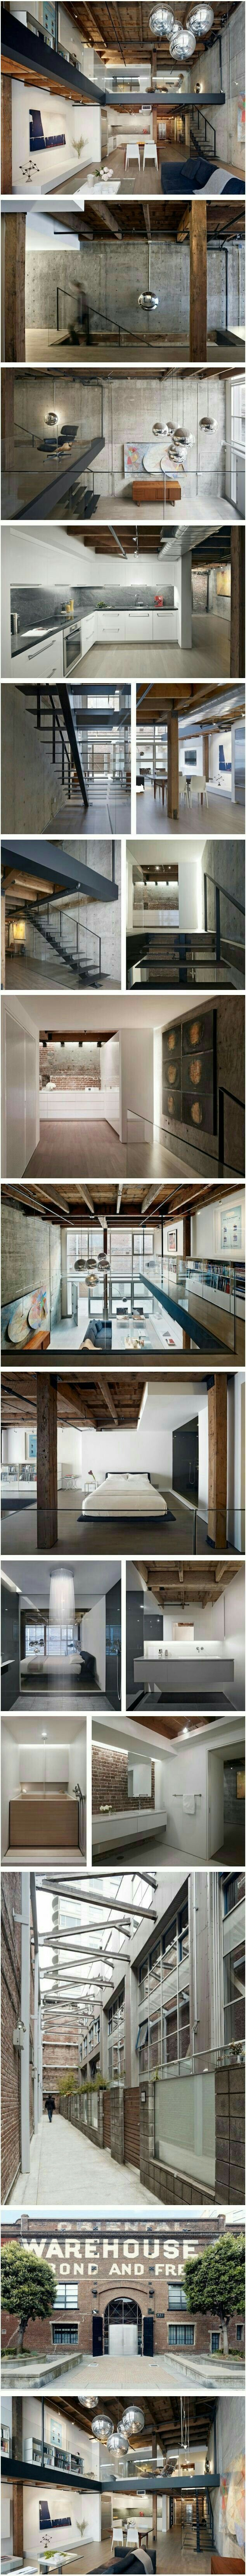 16 best Modern architecture images on Pinterest